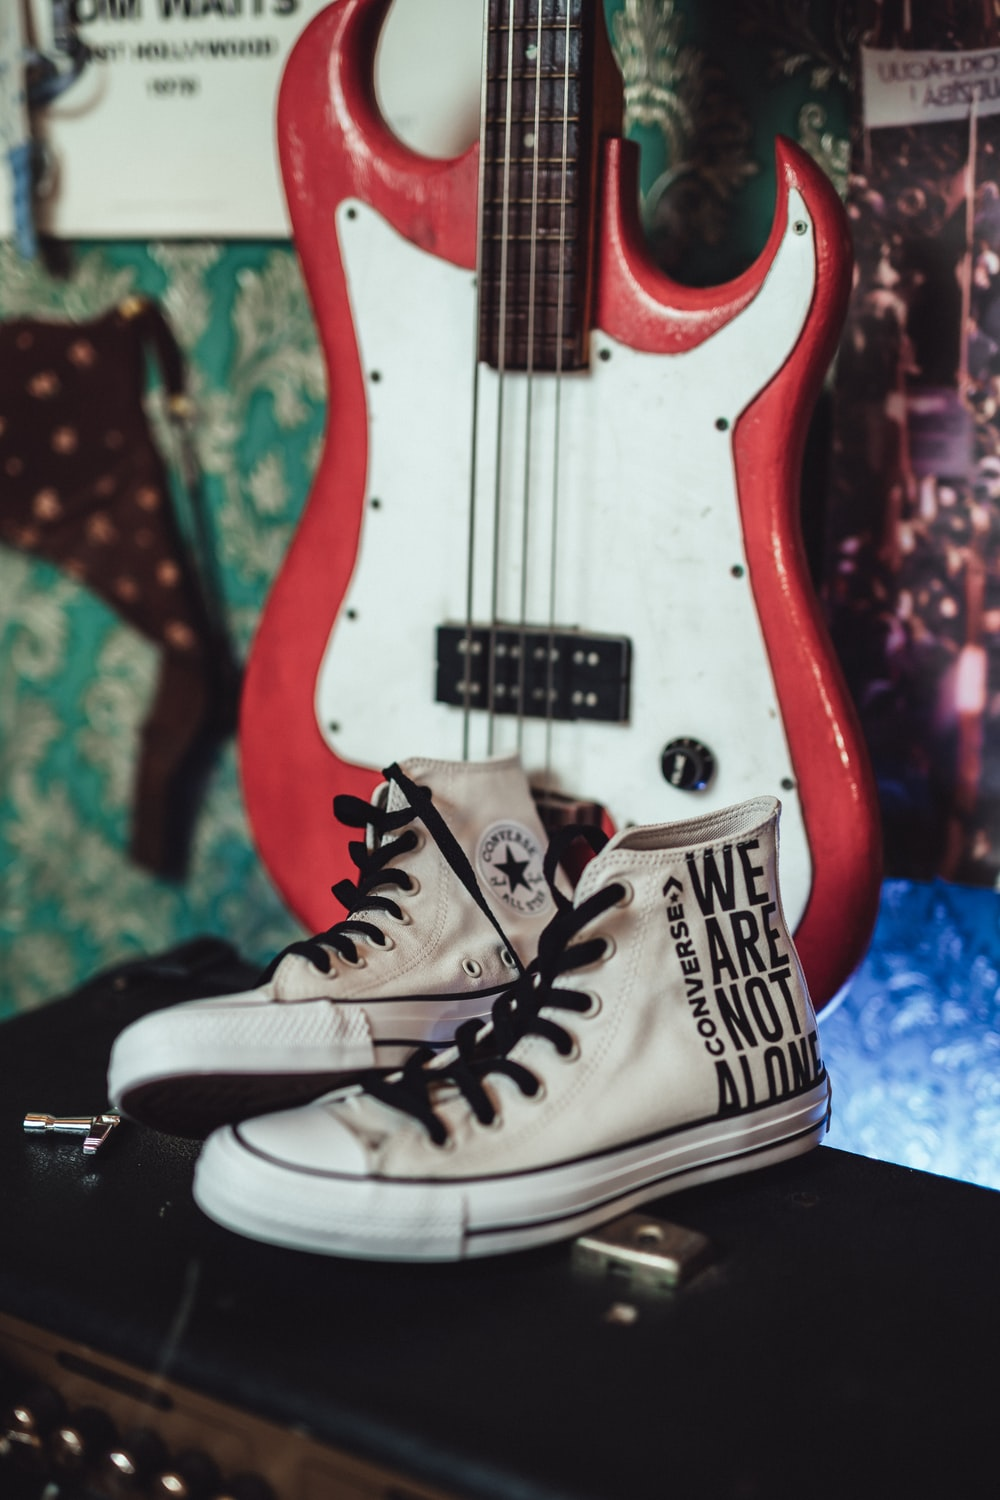 pair of white high-top sneakers